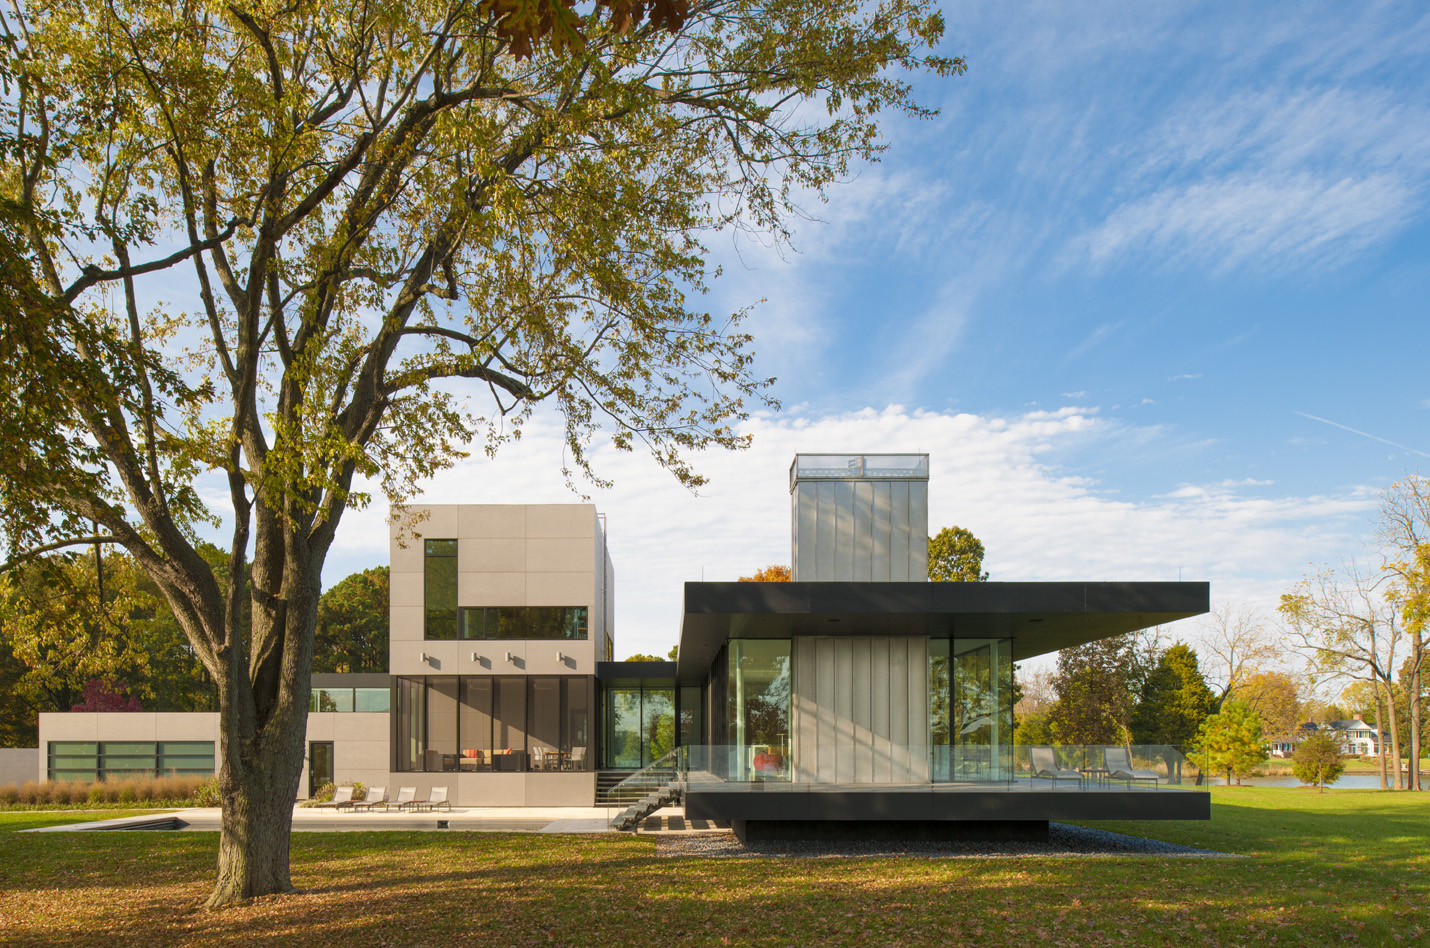 Tred Avon River House / Robert M. Gurney Architect | ArchDaily River House Design on bridge house designs, rapid house designs, tidewater designs, twelfth house designs, hut house designs, current house designs, large tree house designs, river island homes, river style homes, woods house designs, beautiful tree house designs, banished house designs, winter house designs, flower house designs, house house designs, wildlife house designs, sunset house designs, north house designs, modern front house elevation designs, canal house designs,